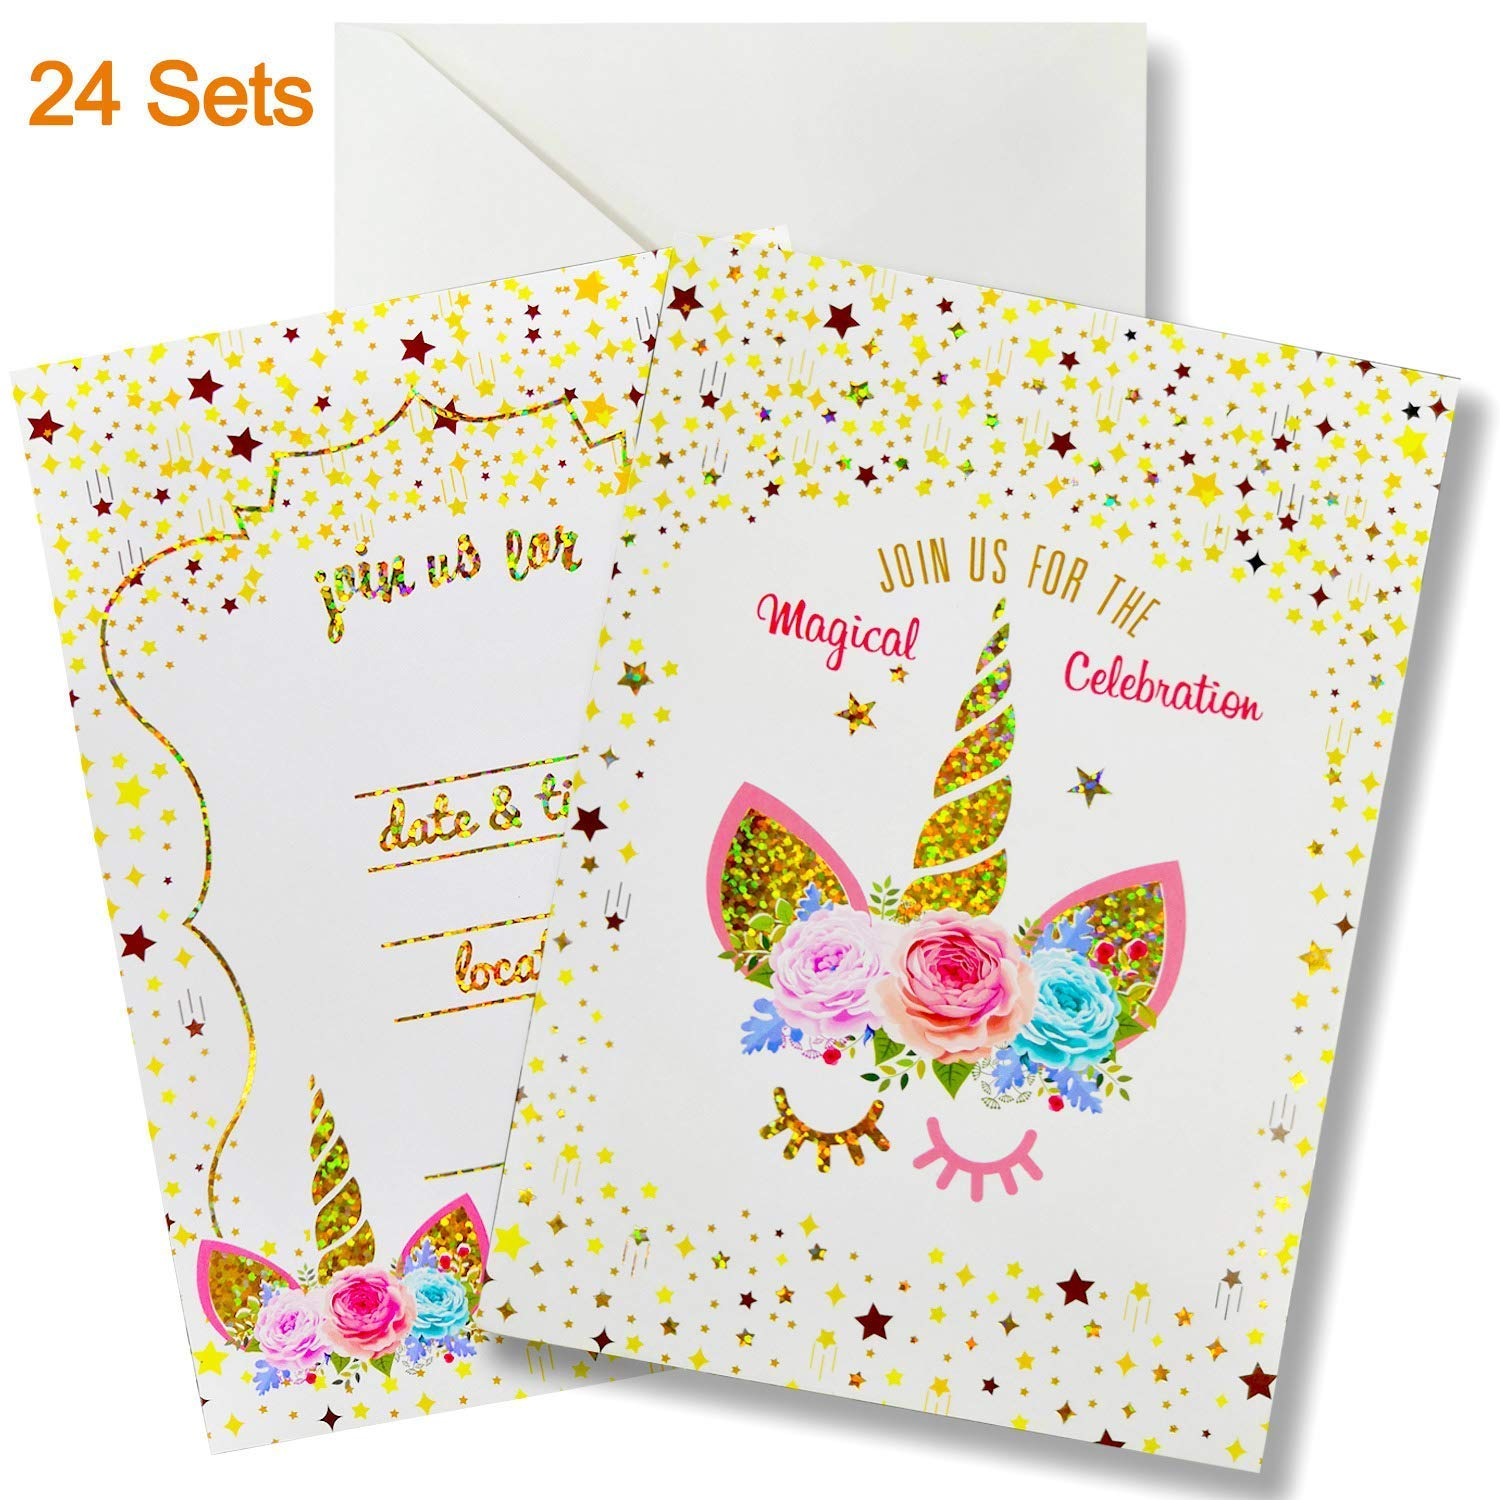 24 Pack Glitter Large Unicorn Invitations Cards Set with Envelopes Party Supplies for Kids Birthday Baby Shower Double Sided